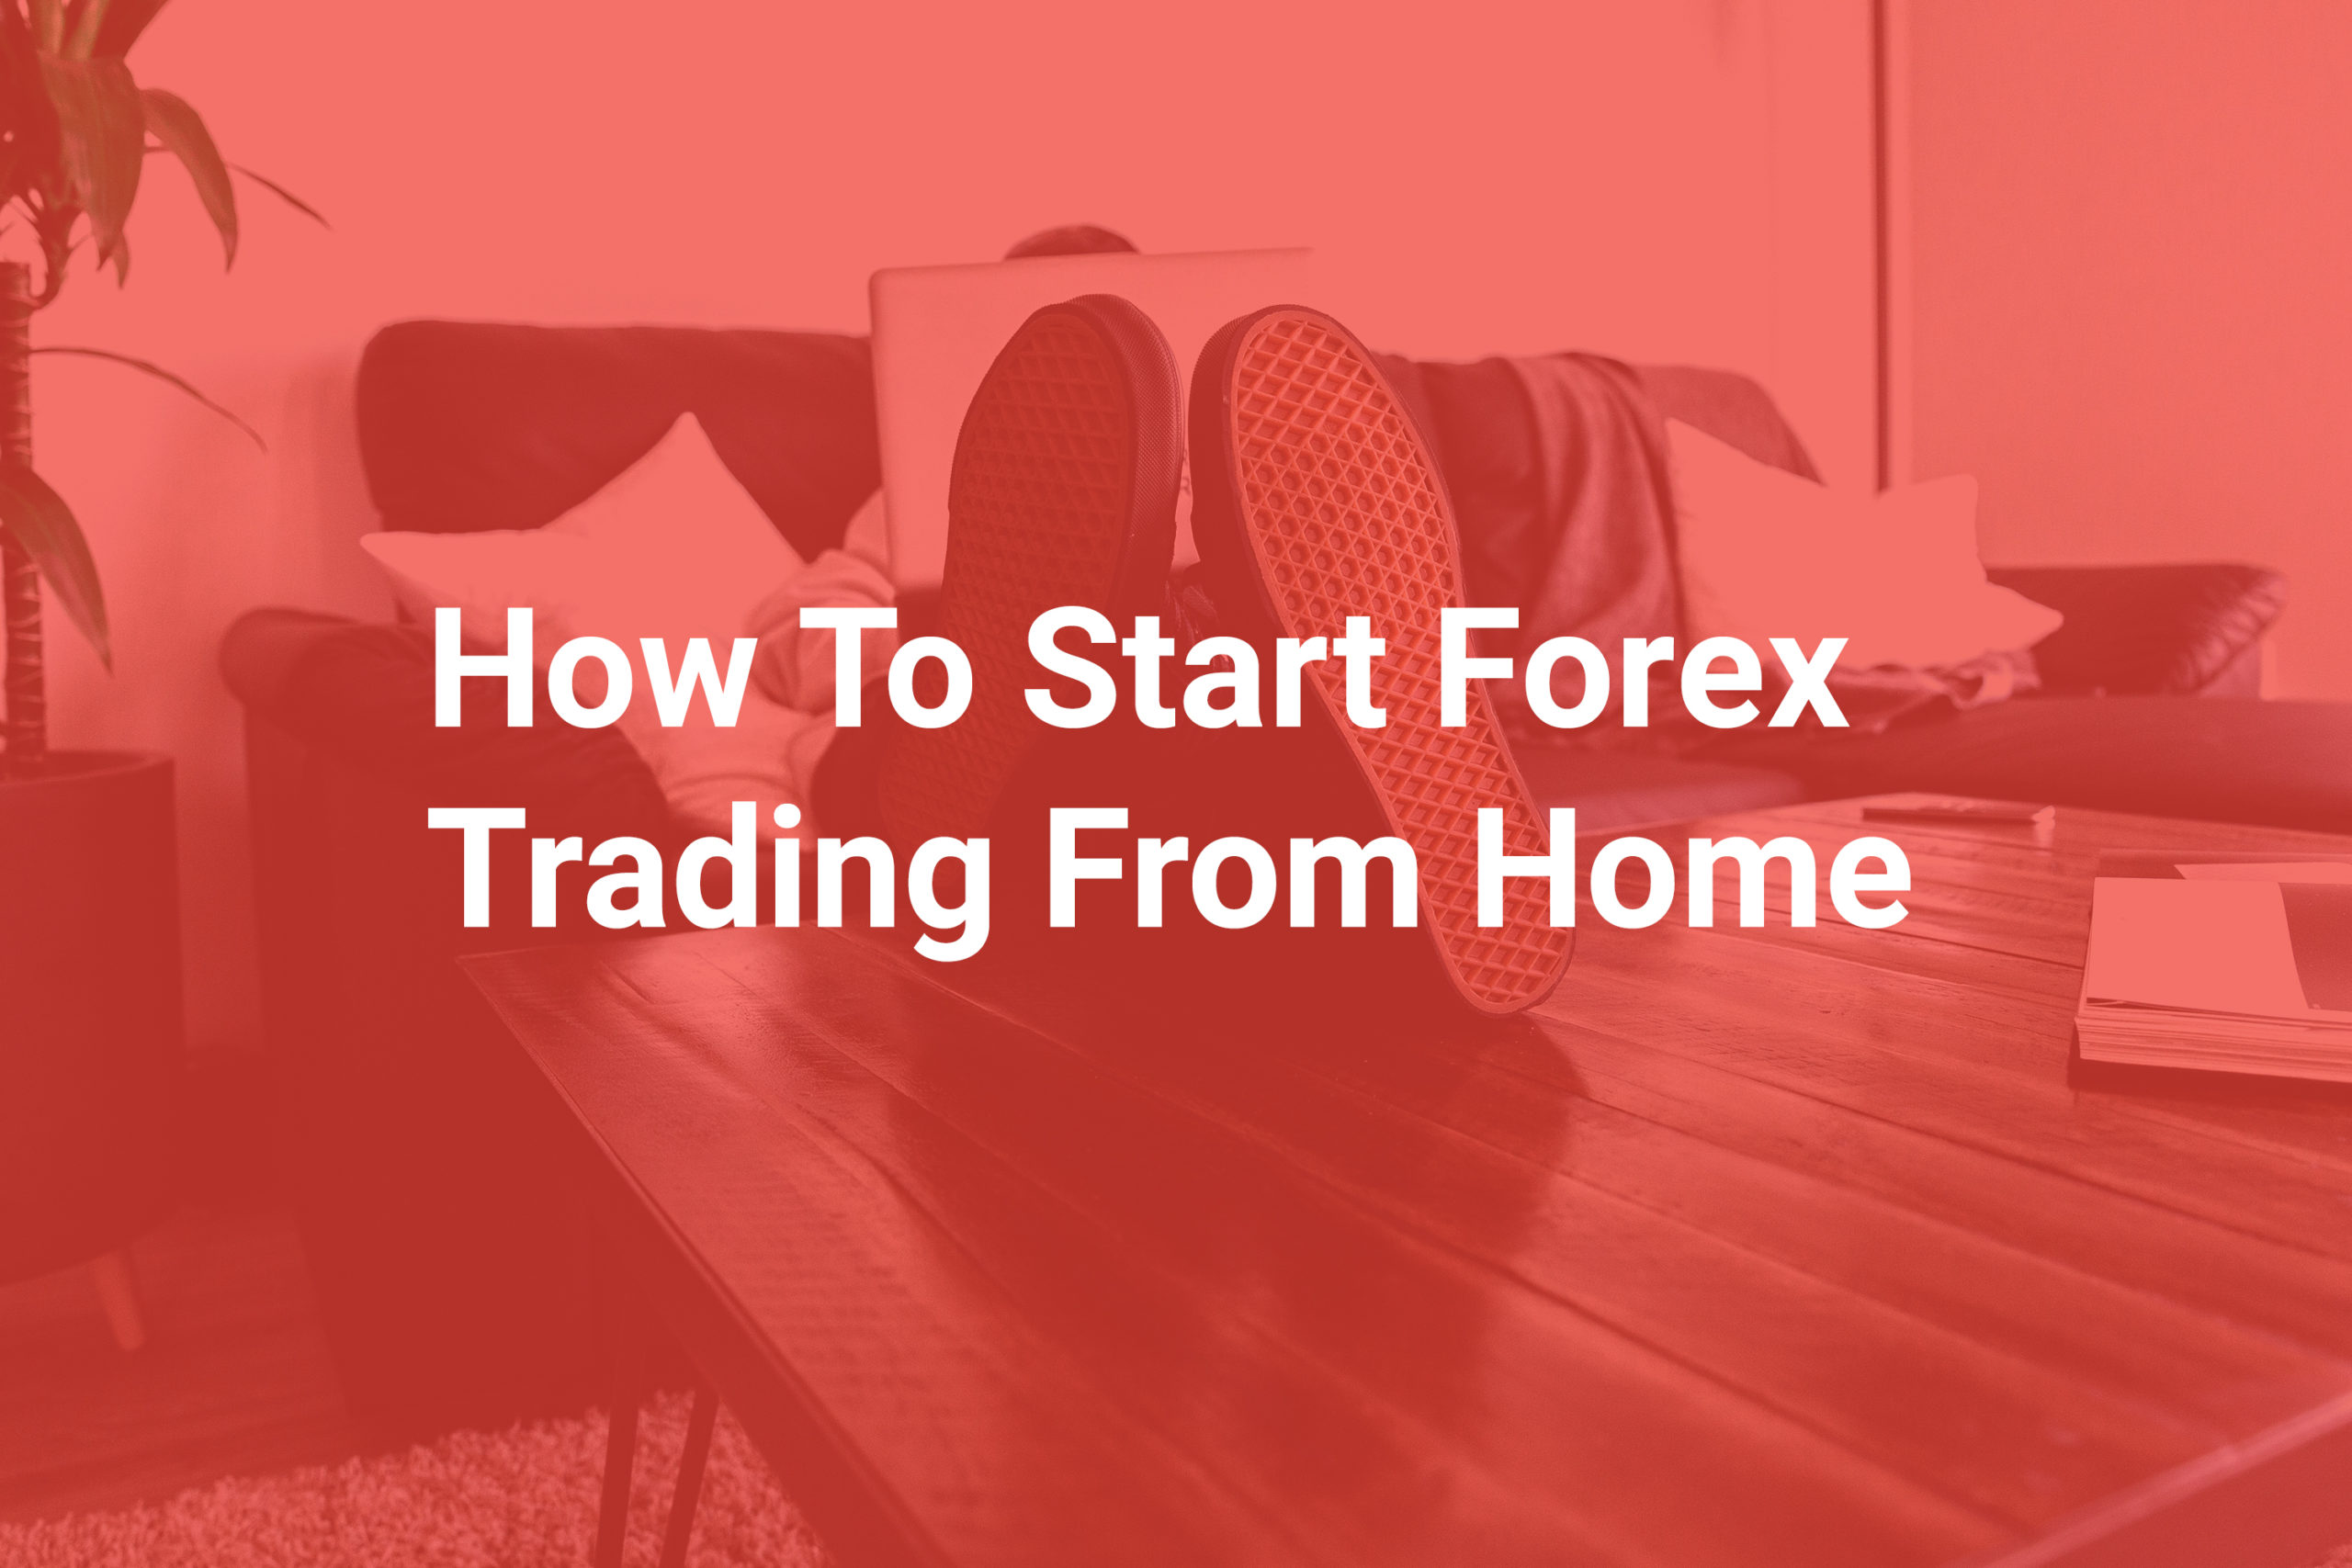 trade forex from home